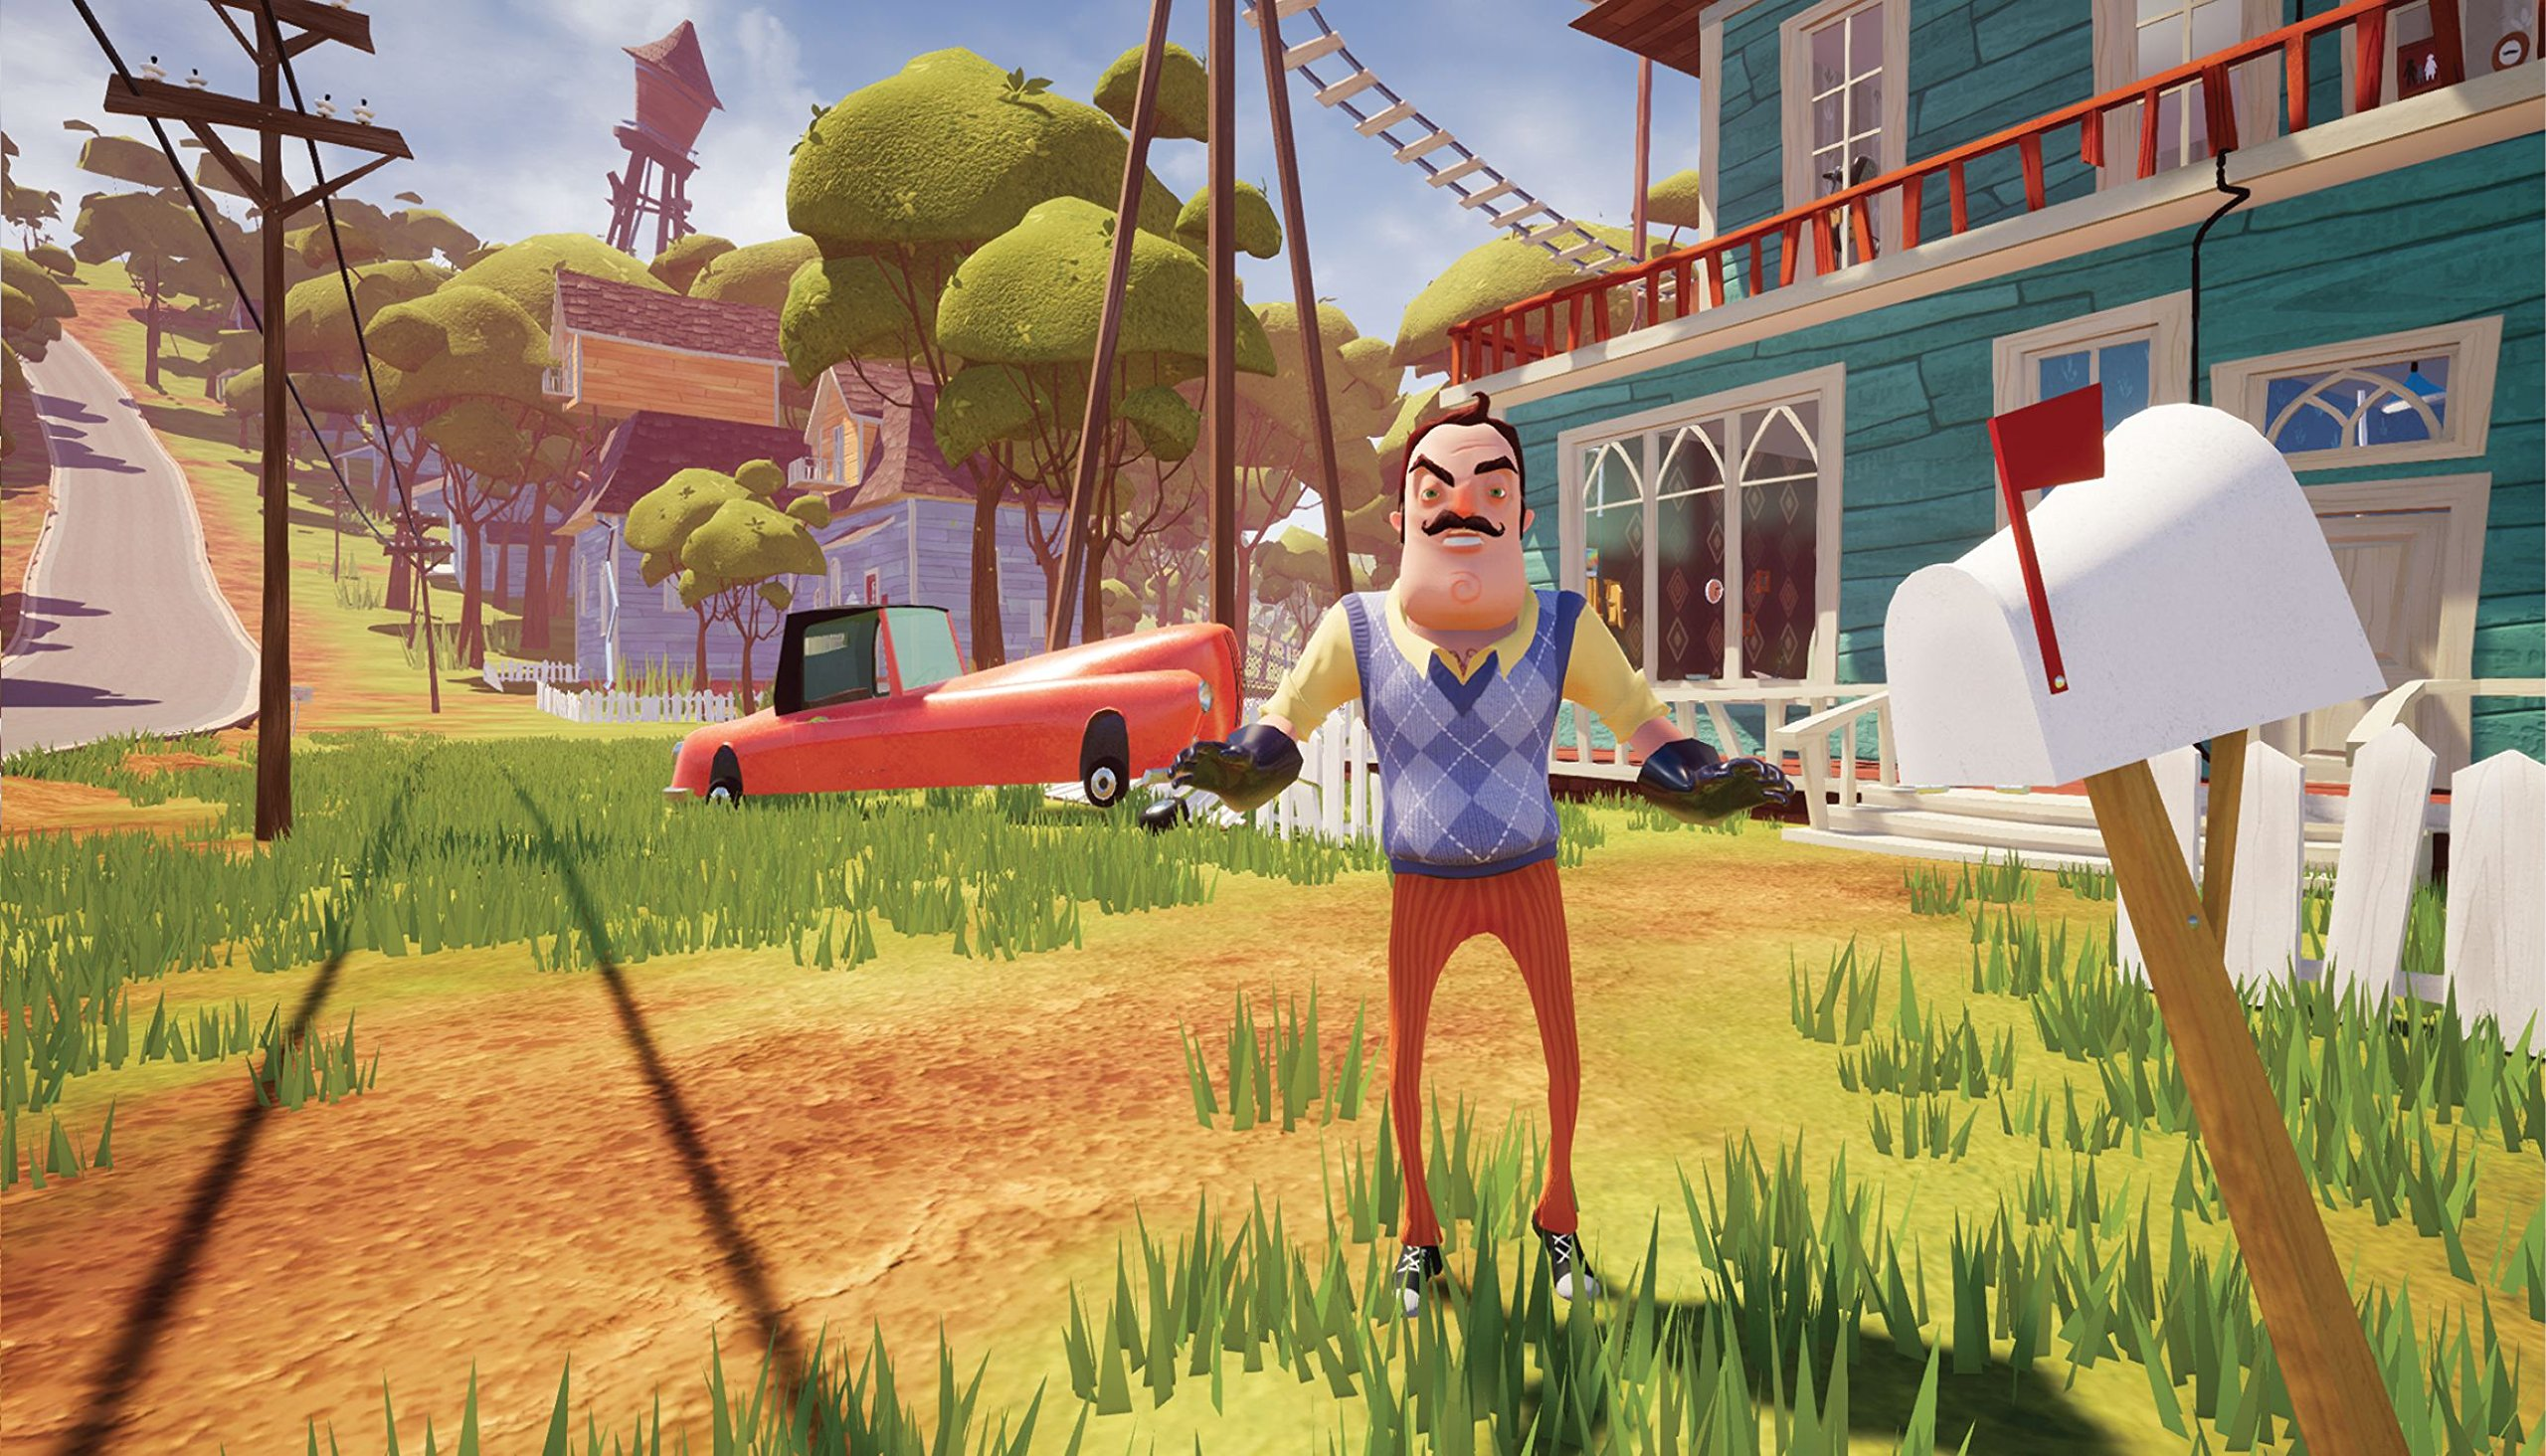 Video Games & Consoles Hello Neighbor Xbox One Case Only With Artwork No Game With The Most Up-To-Date Equipment And Techniques